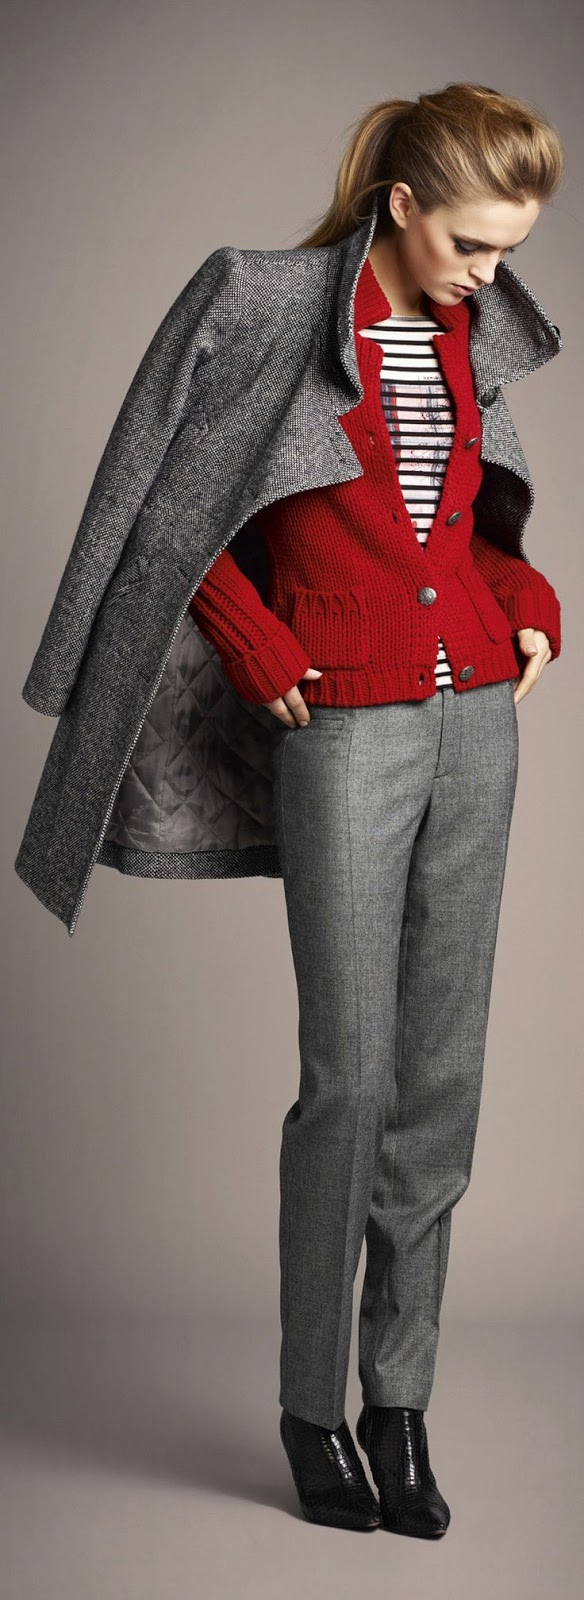 Grey Outfit, Red Sweater | PIN Blogger